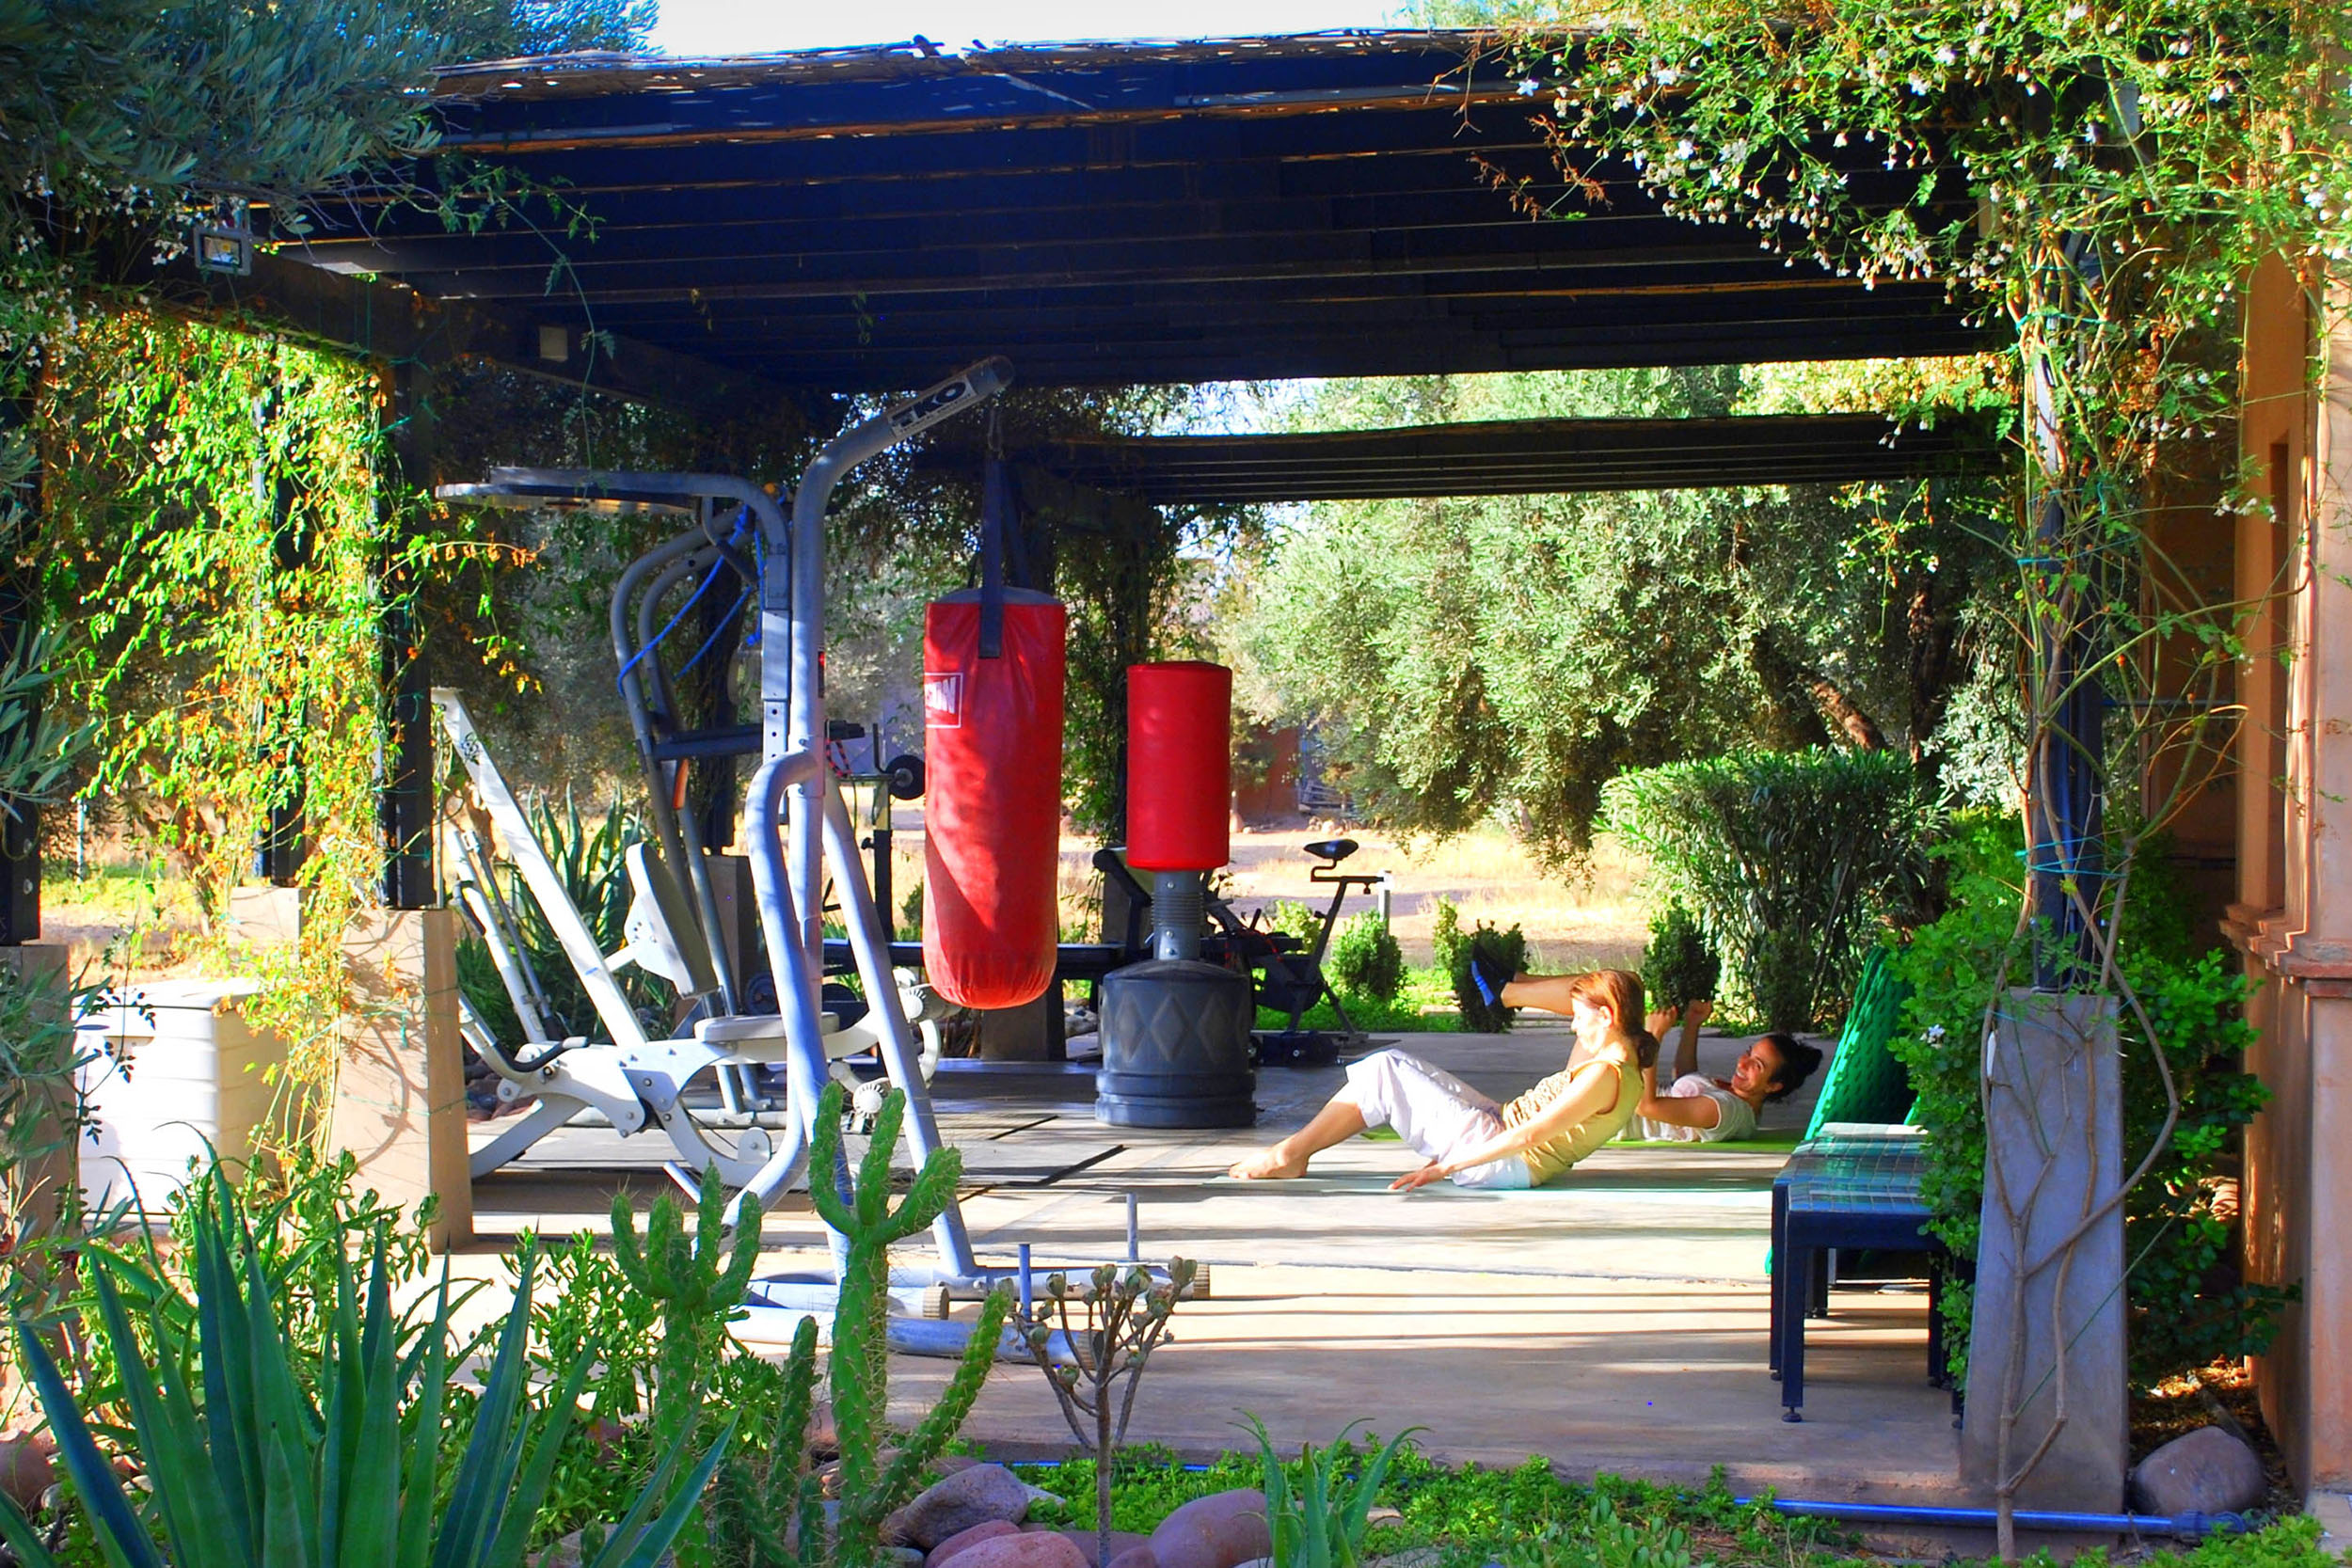 Exercise spaces - Some are poolside, some are in tents, all are lovely spaces